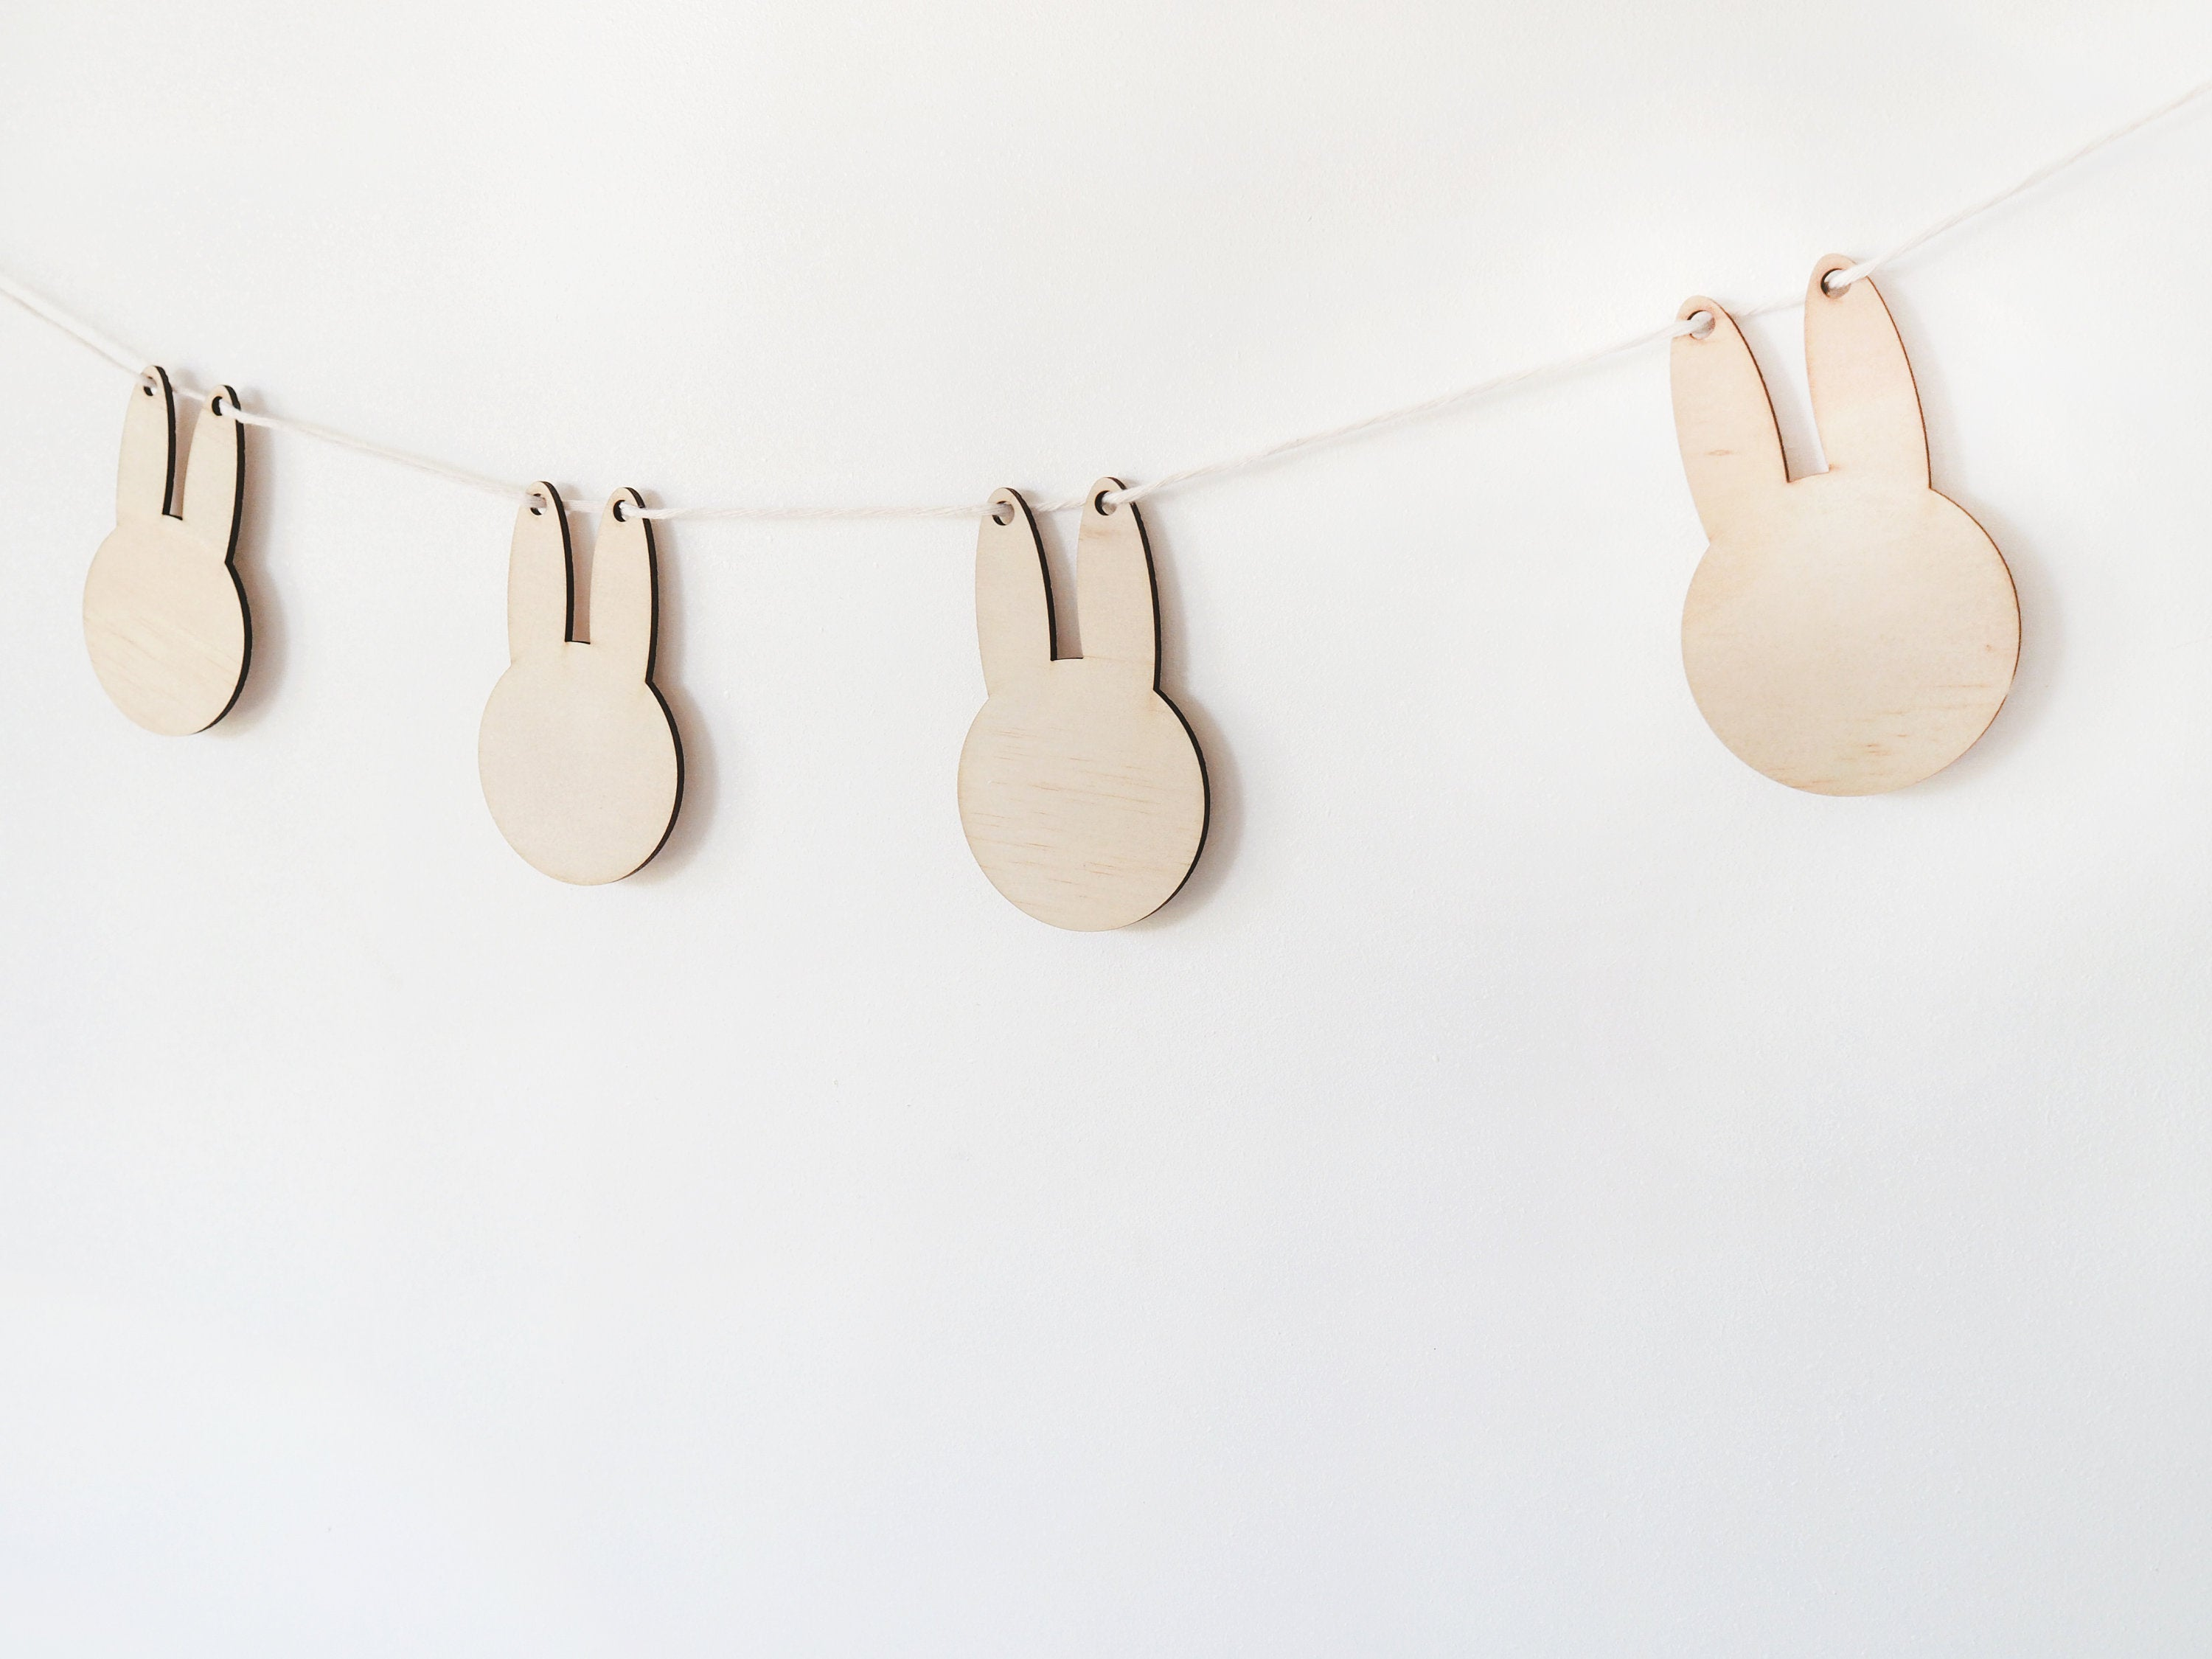 Bunny Easter Garland - Wooden Bunny Garland, Easter Garland, Easter Banner, Easter Decorations, Garland for Mantle, Easter Bunny Garland